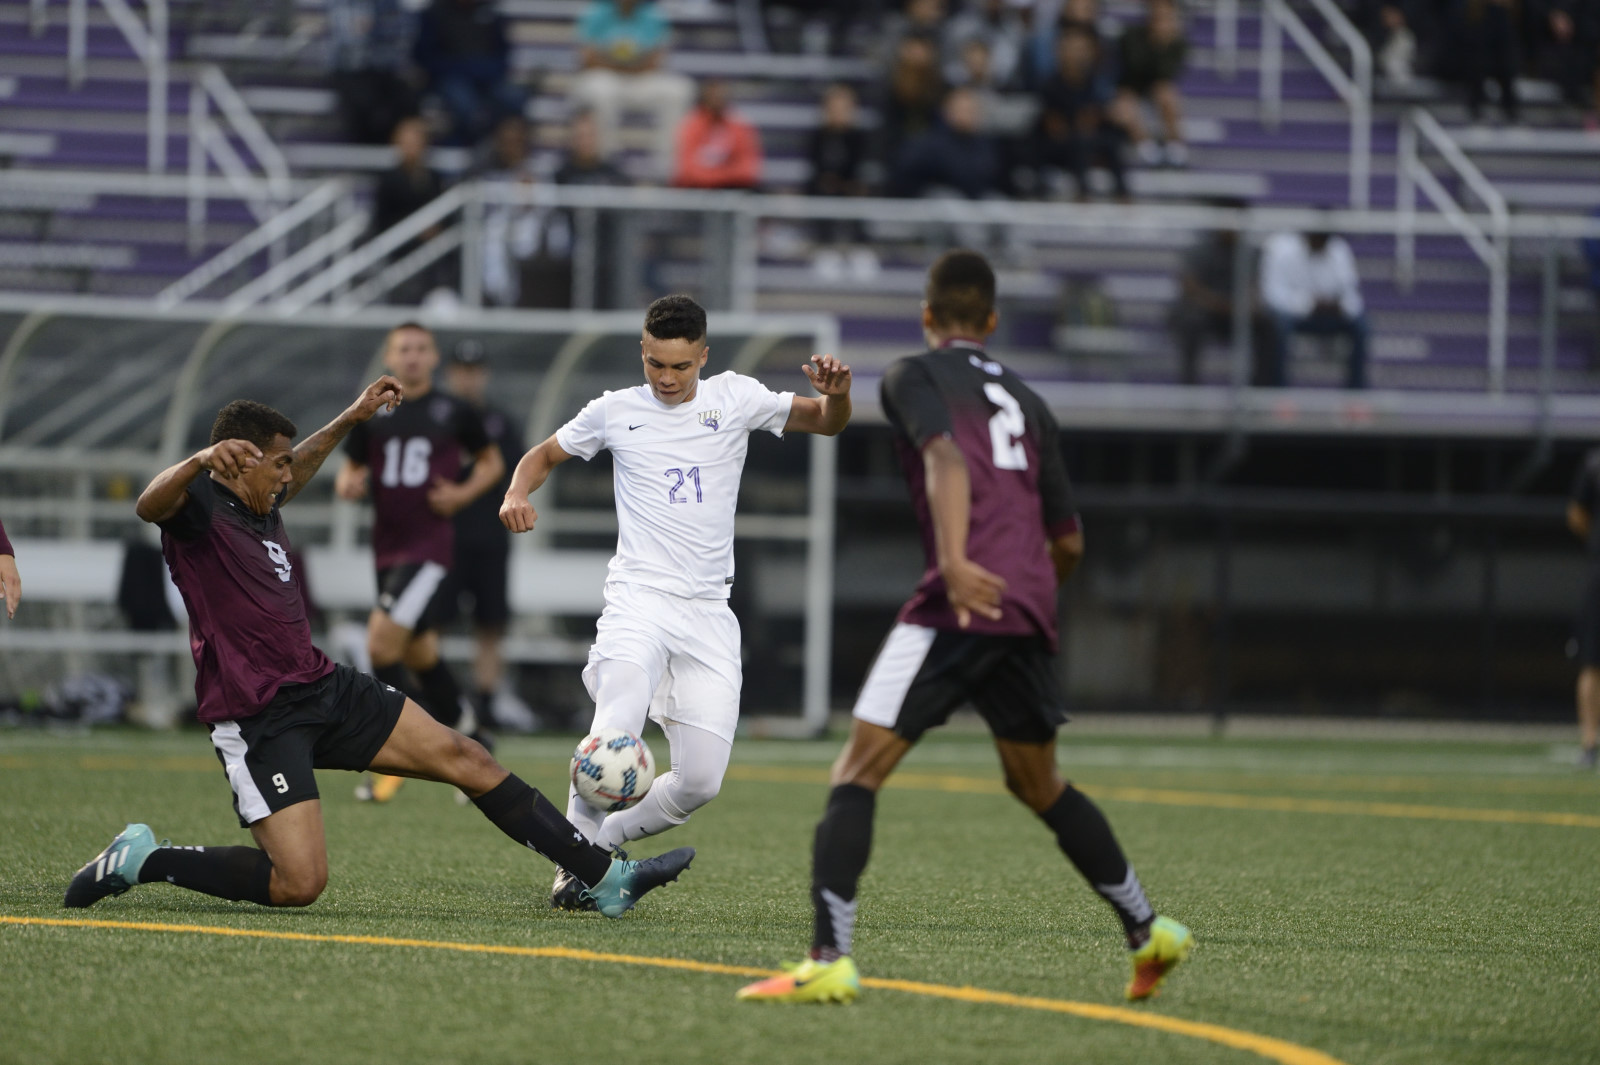 Men's Soccer Races Past New Haven, 4-1, In 2018 Season Opener